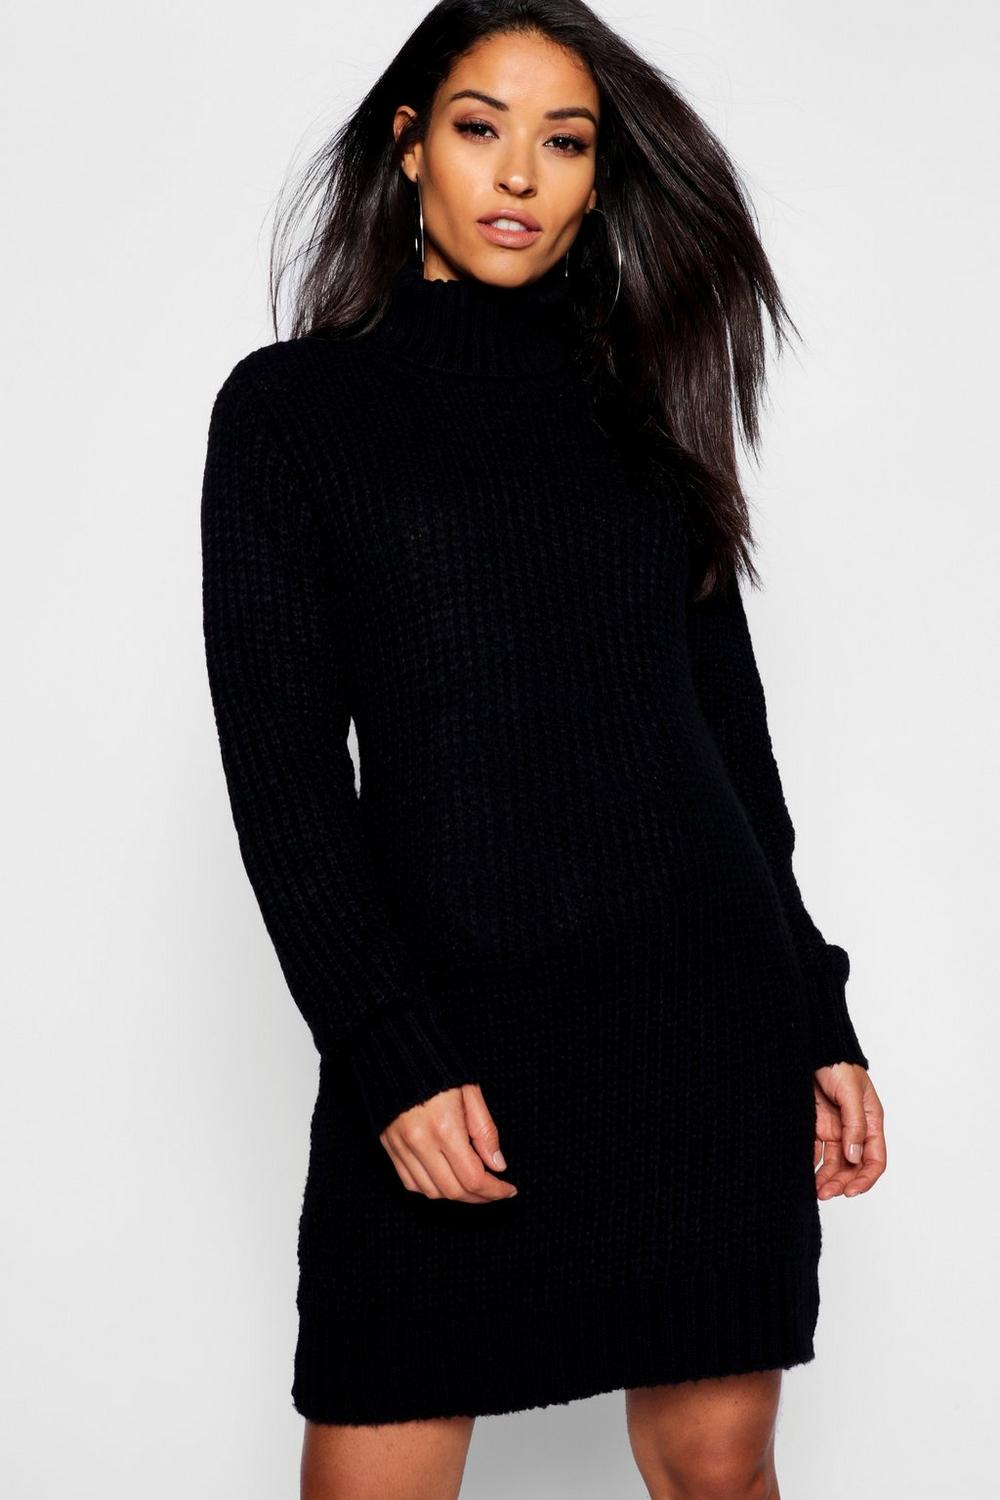 promotion matching in colour super cheap Maternity Soft Knit Roll Neck Jumper Dress | Boohoo